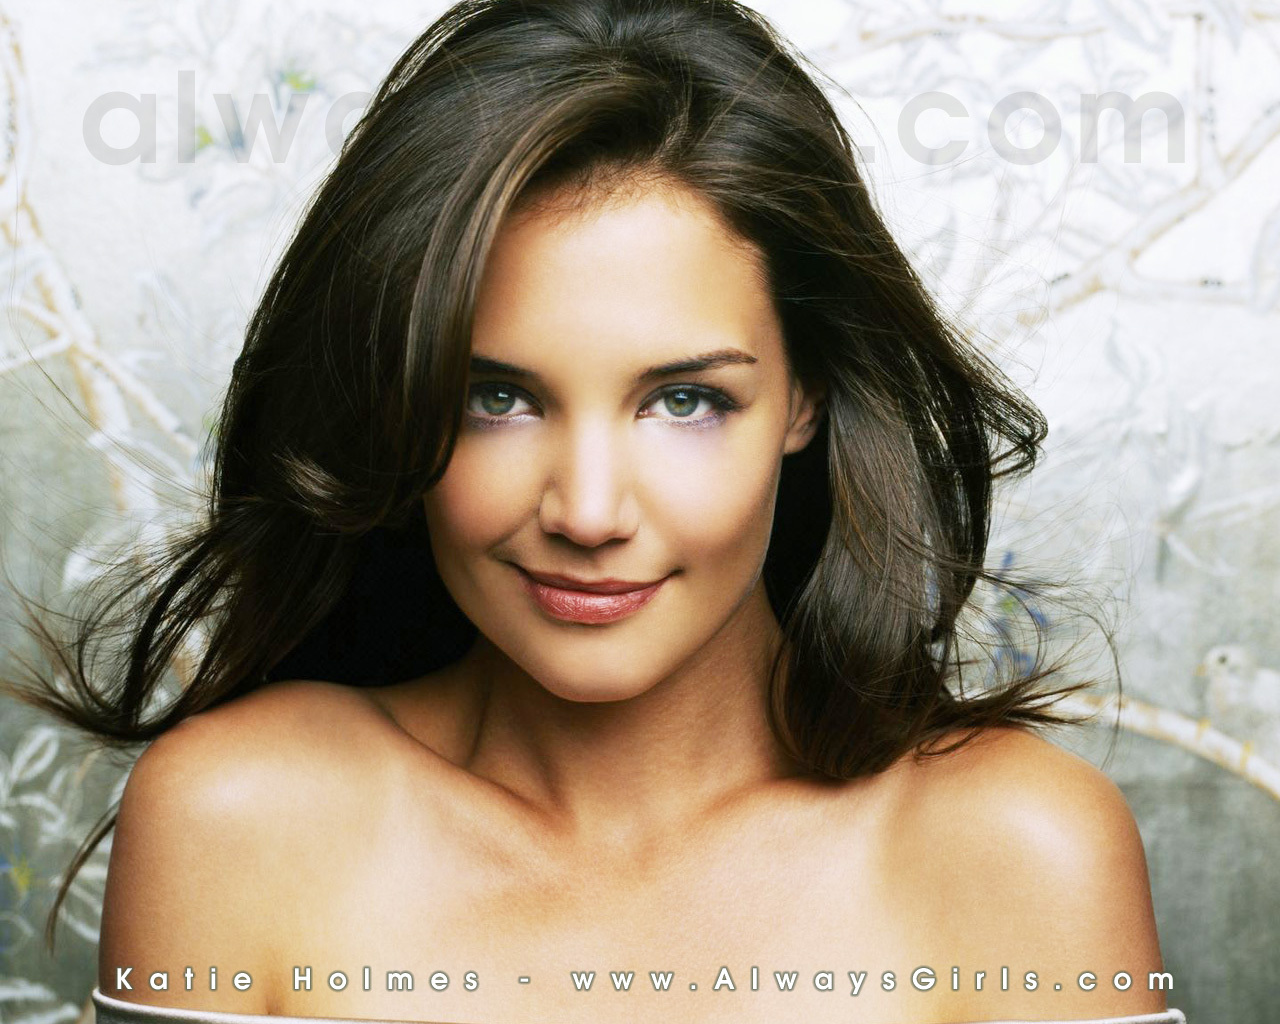 Katie Holmes images Katie Holmes HD wallpaper and background photos ... Katie Holmes